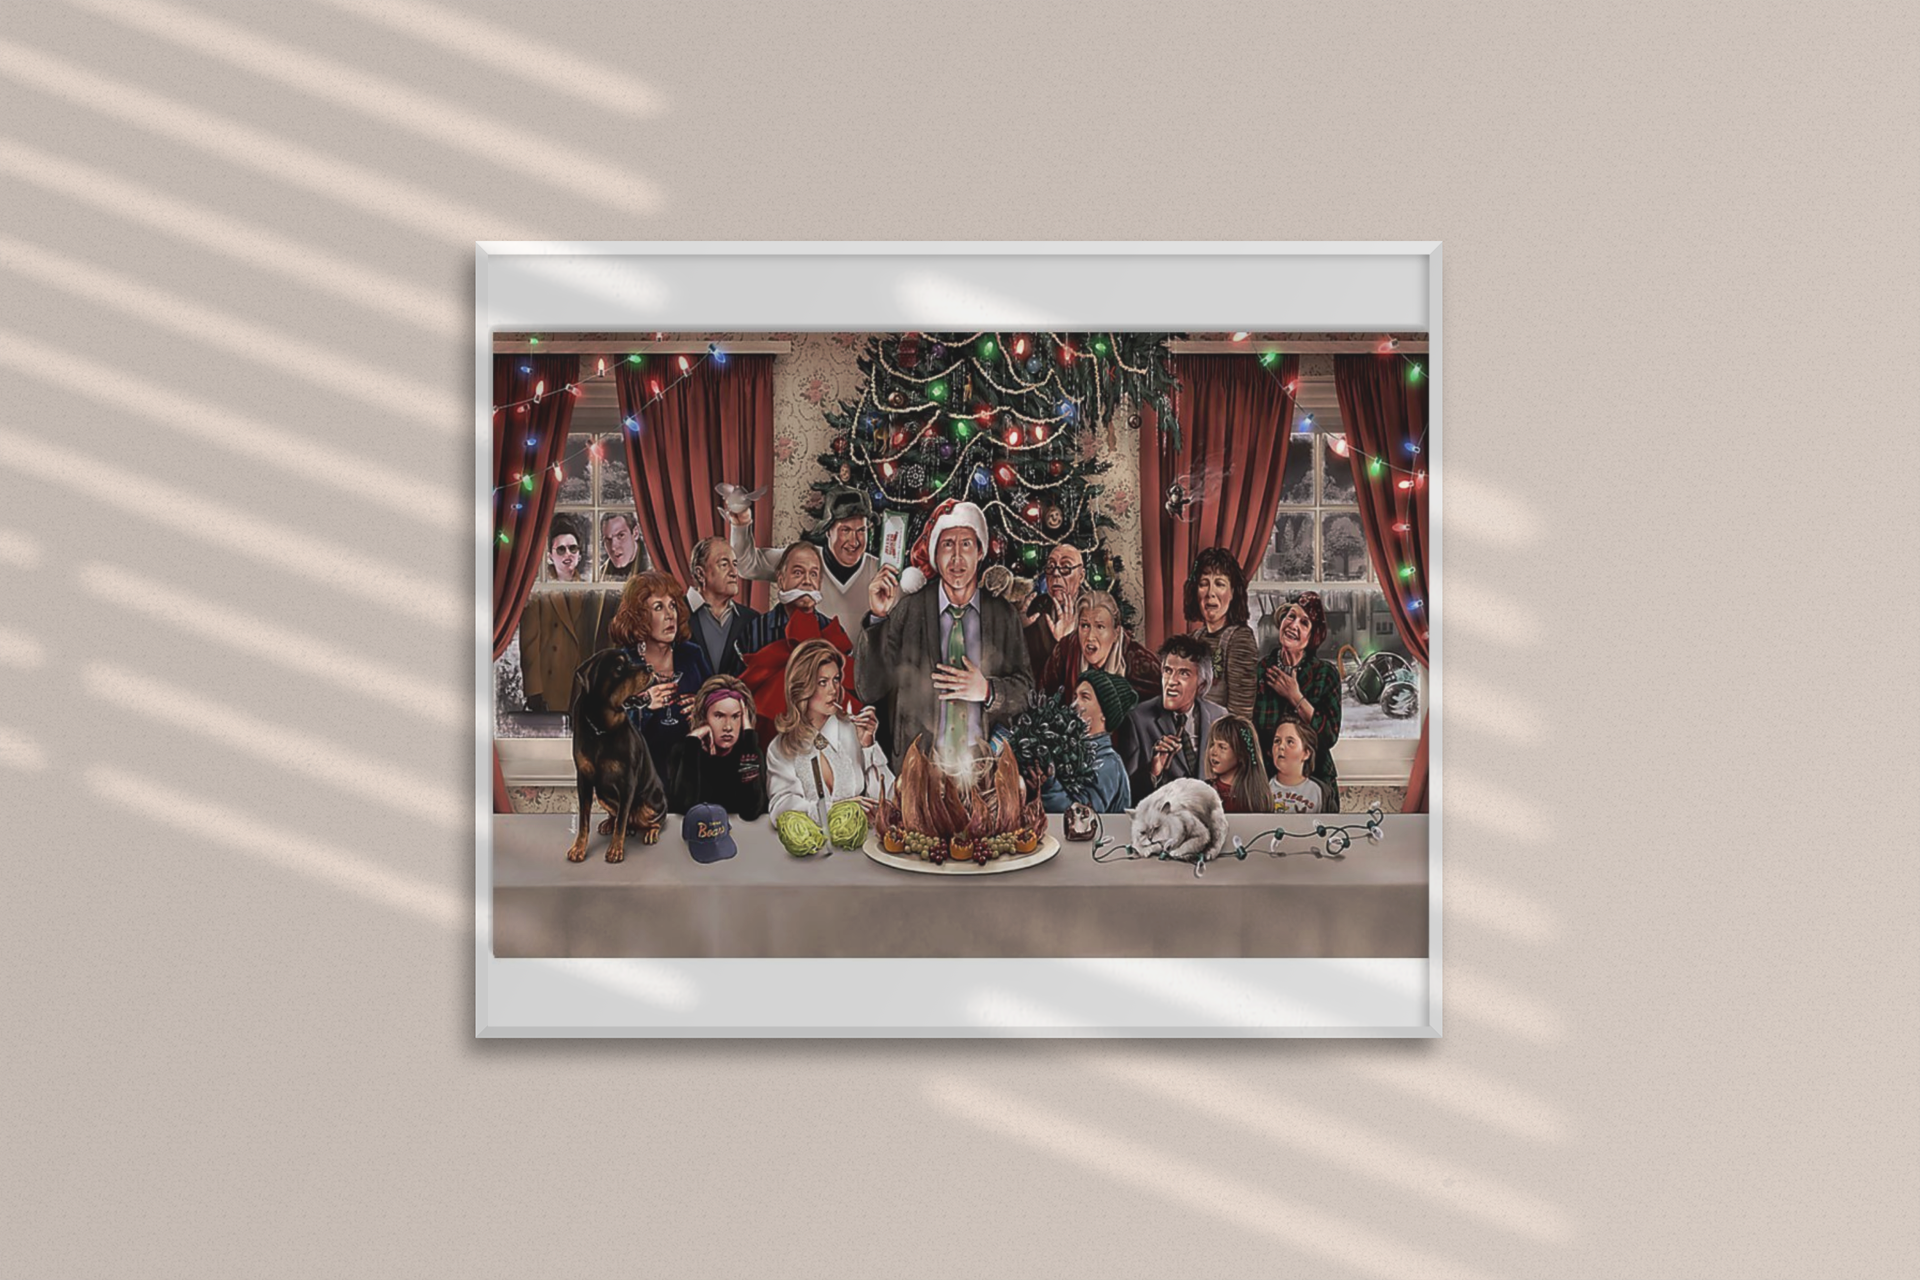 Christmas national lampoons vacation poster